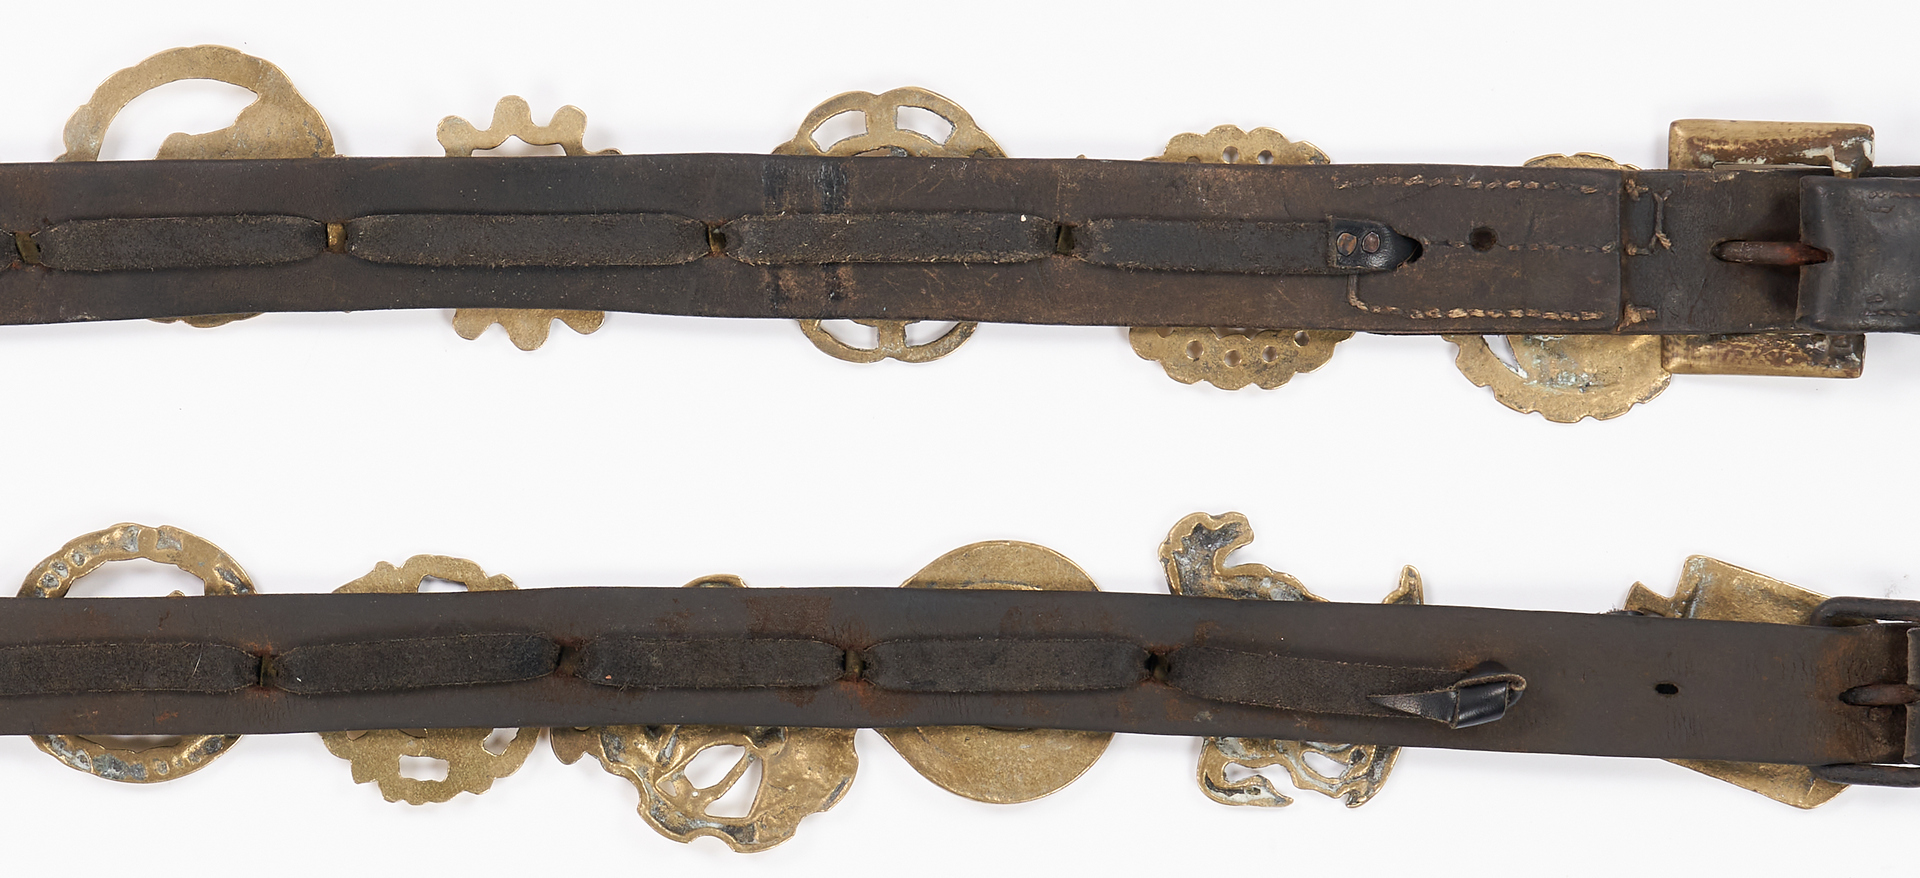 Lot 1047: 2 pcs English Horse Harness with Brasses